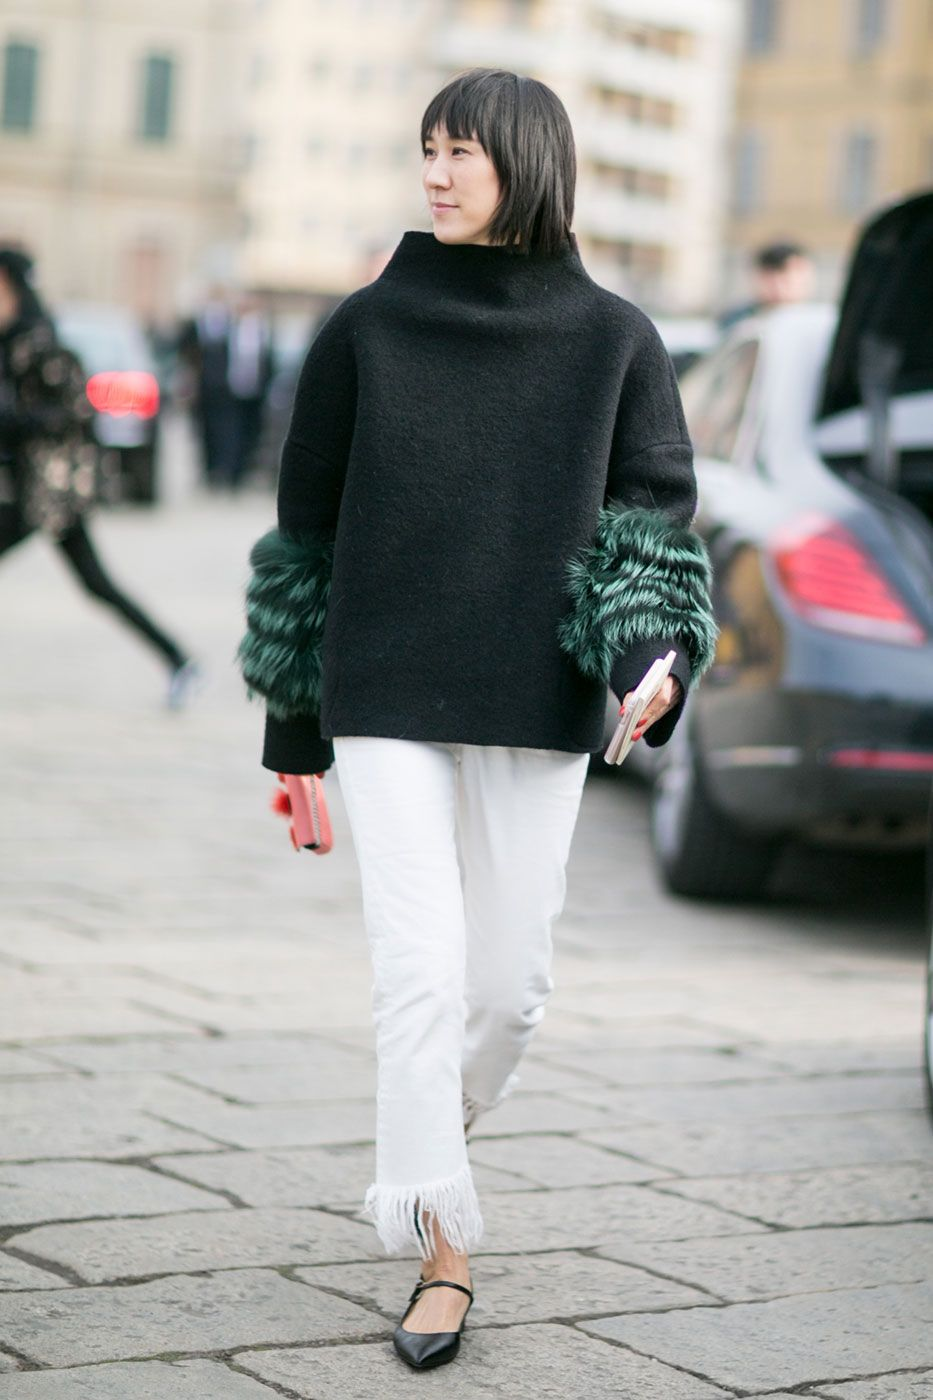 A black sweater met green sleeves on a white pants, so classy and comfy. Milan Fashion Week